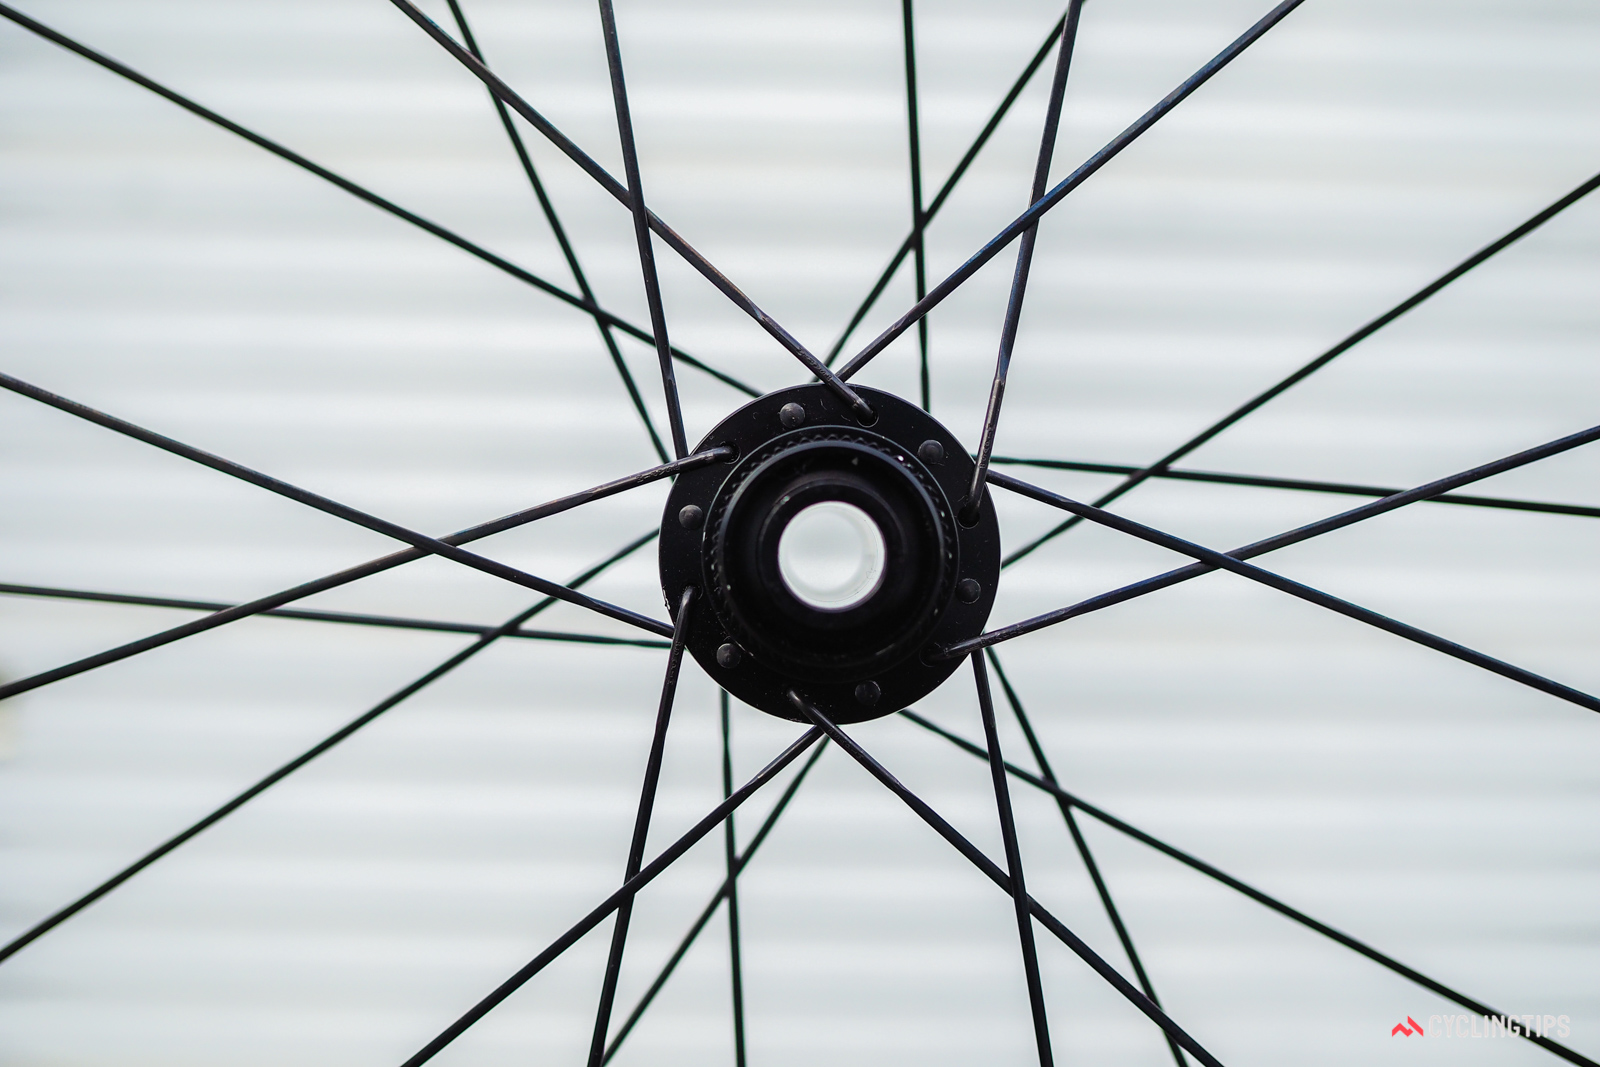 Enve builds the 4.5 AR Disc wheels with 24 Sapim CX-Ray bladed stainless steel spokes front and rear.